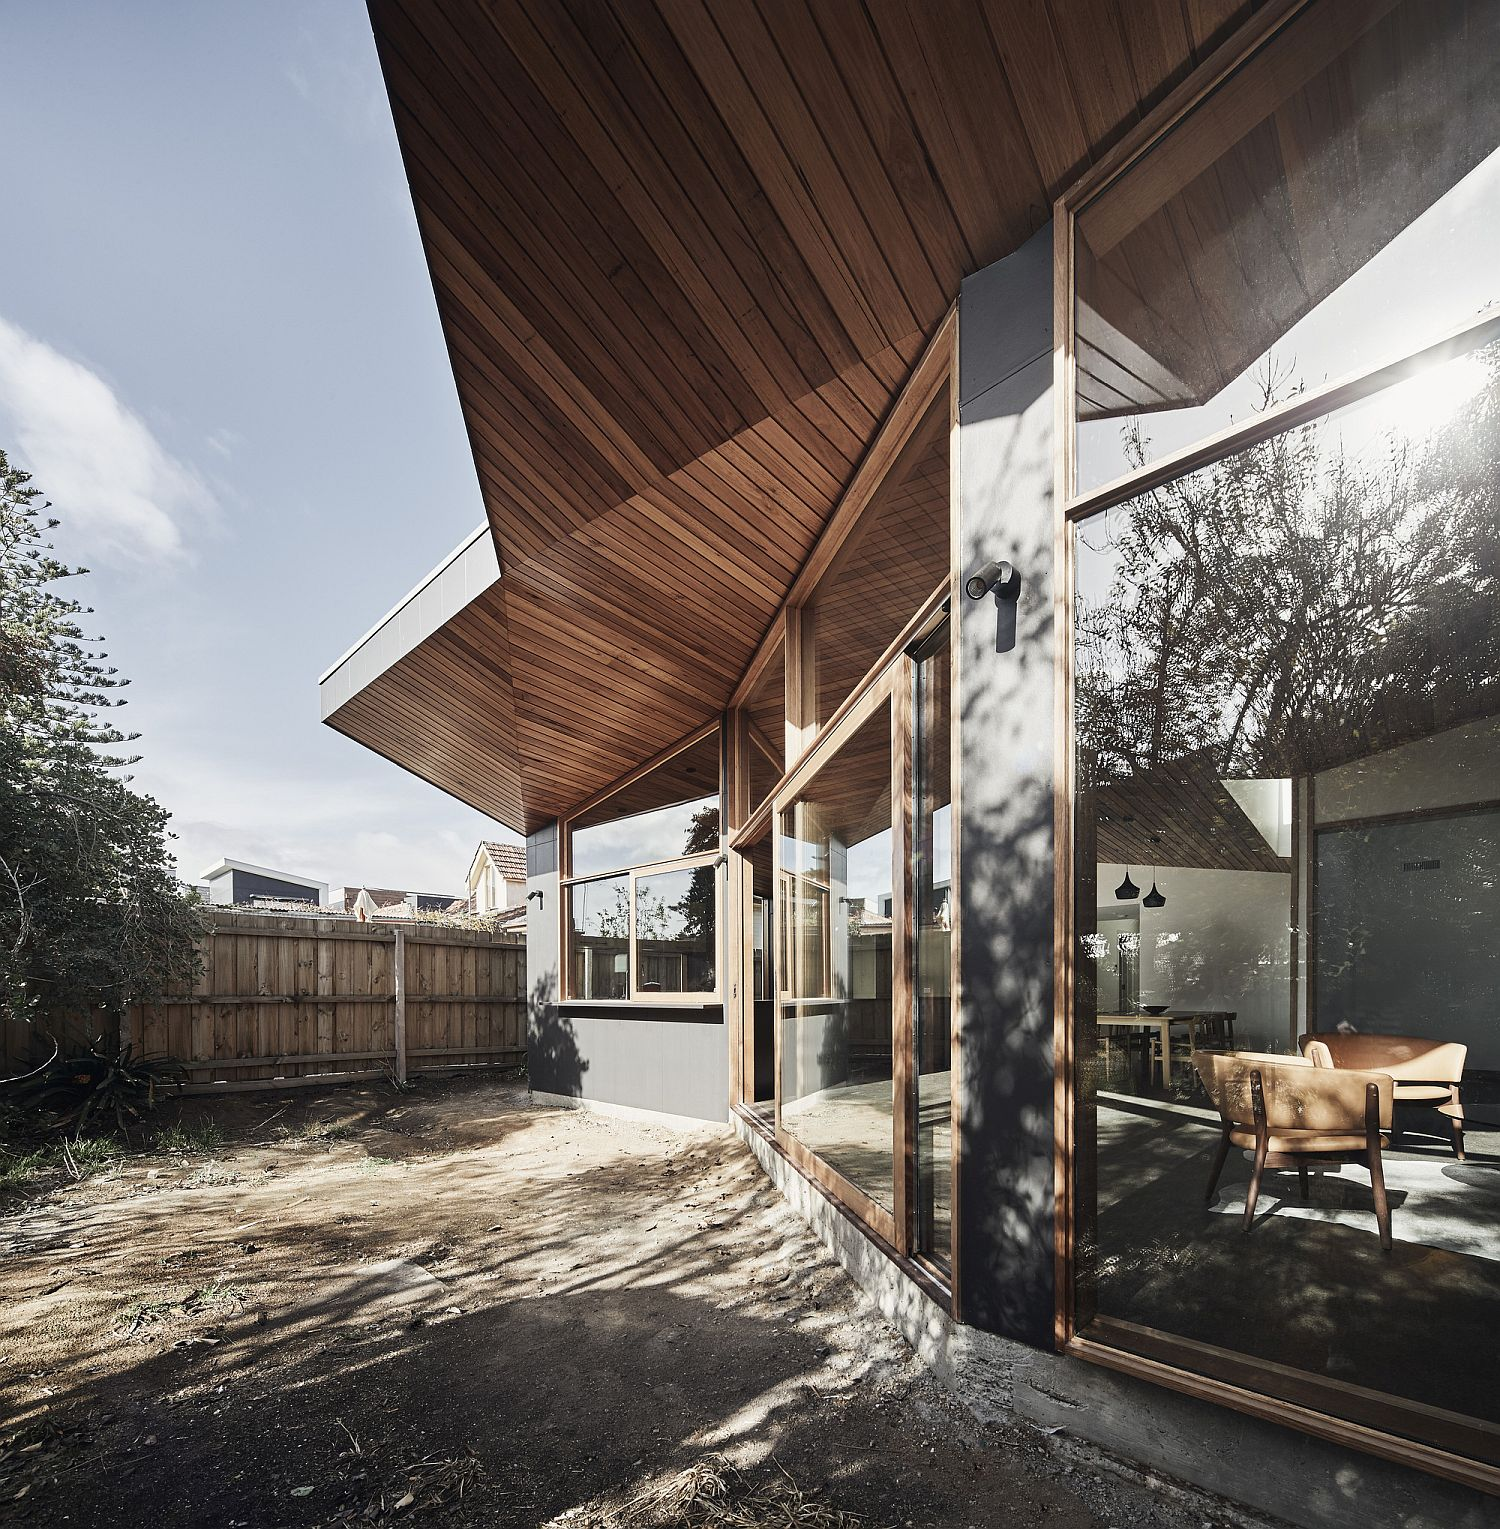 Folded wooden ceiling design of the modern extended AUssie home